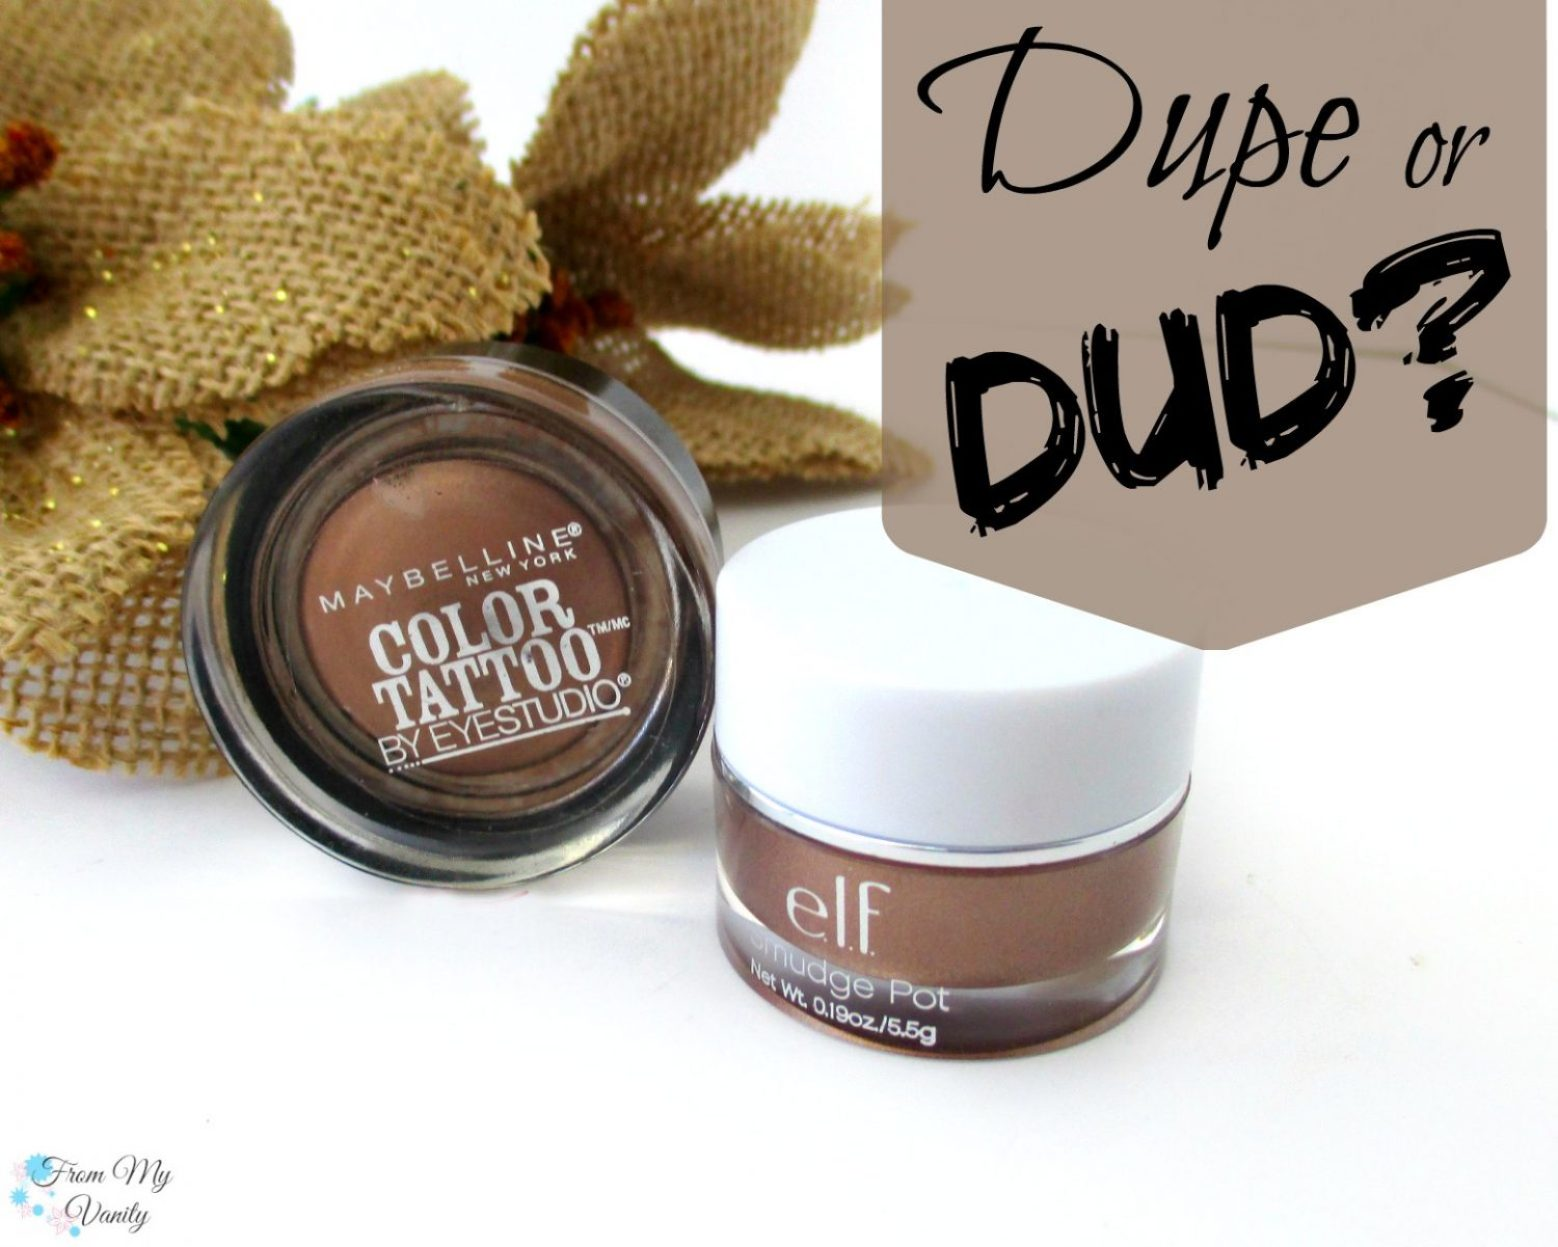 Dupe or Dud // Maybelline Color Tattoo vs ELF Smudge Pot // Bad to the Bronze // Cruisin Chic // FromMyVanity.com